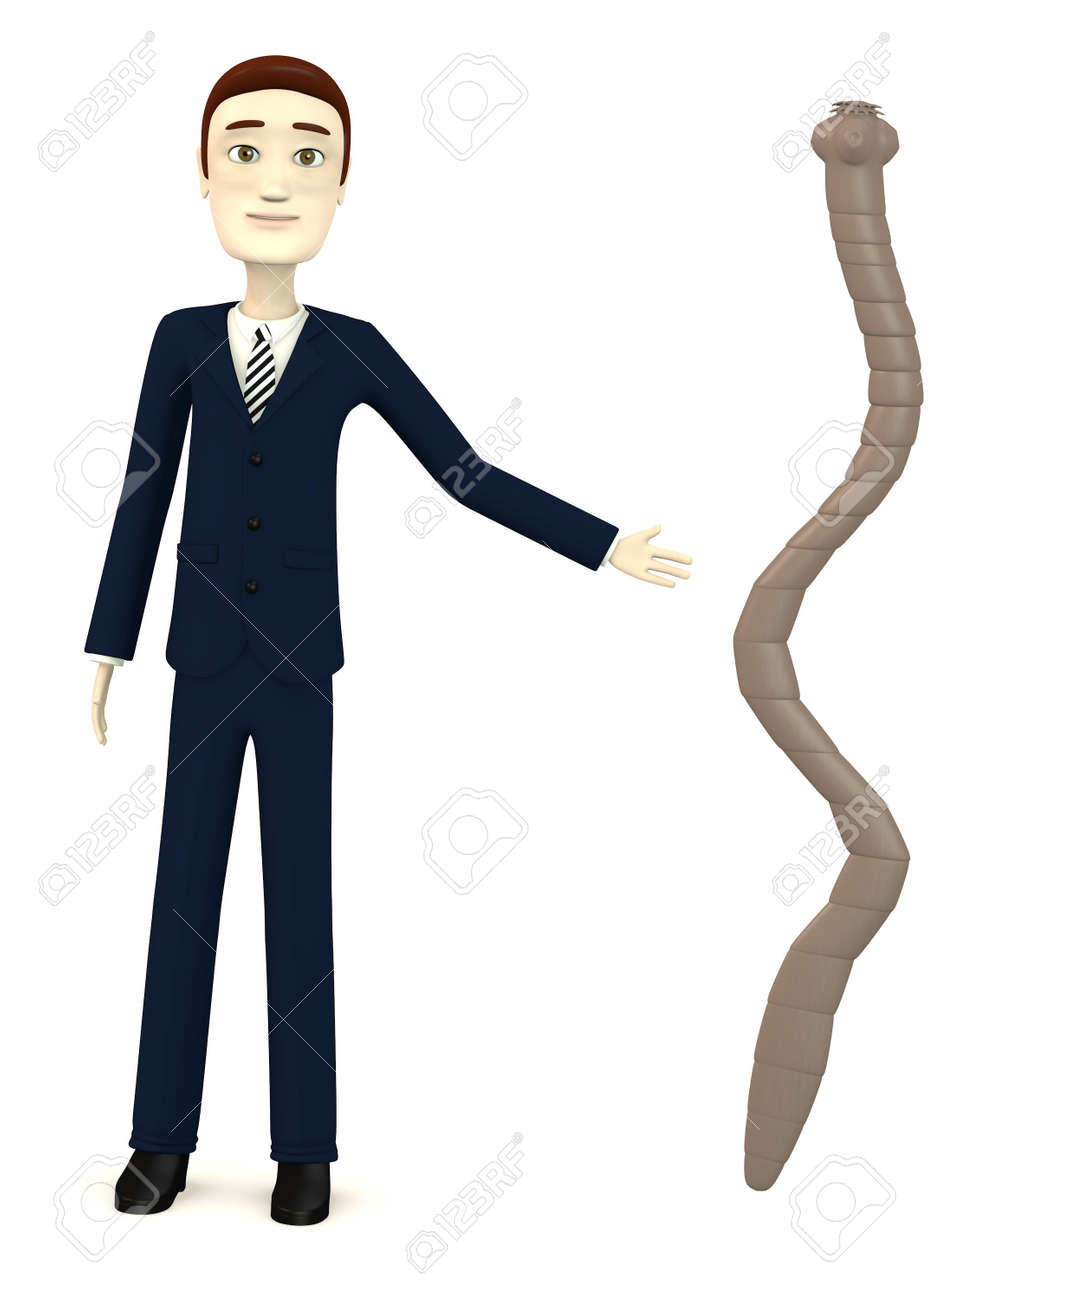 3d render of cartoon character with tapeworm Stock Photo - 18164334